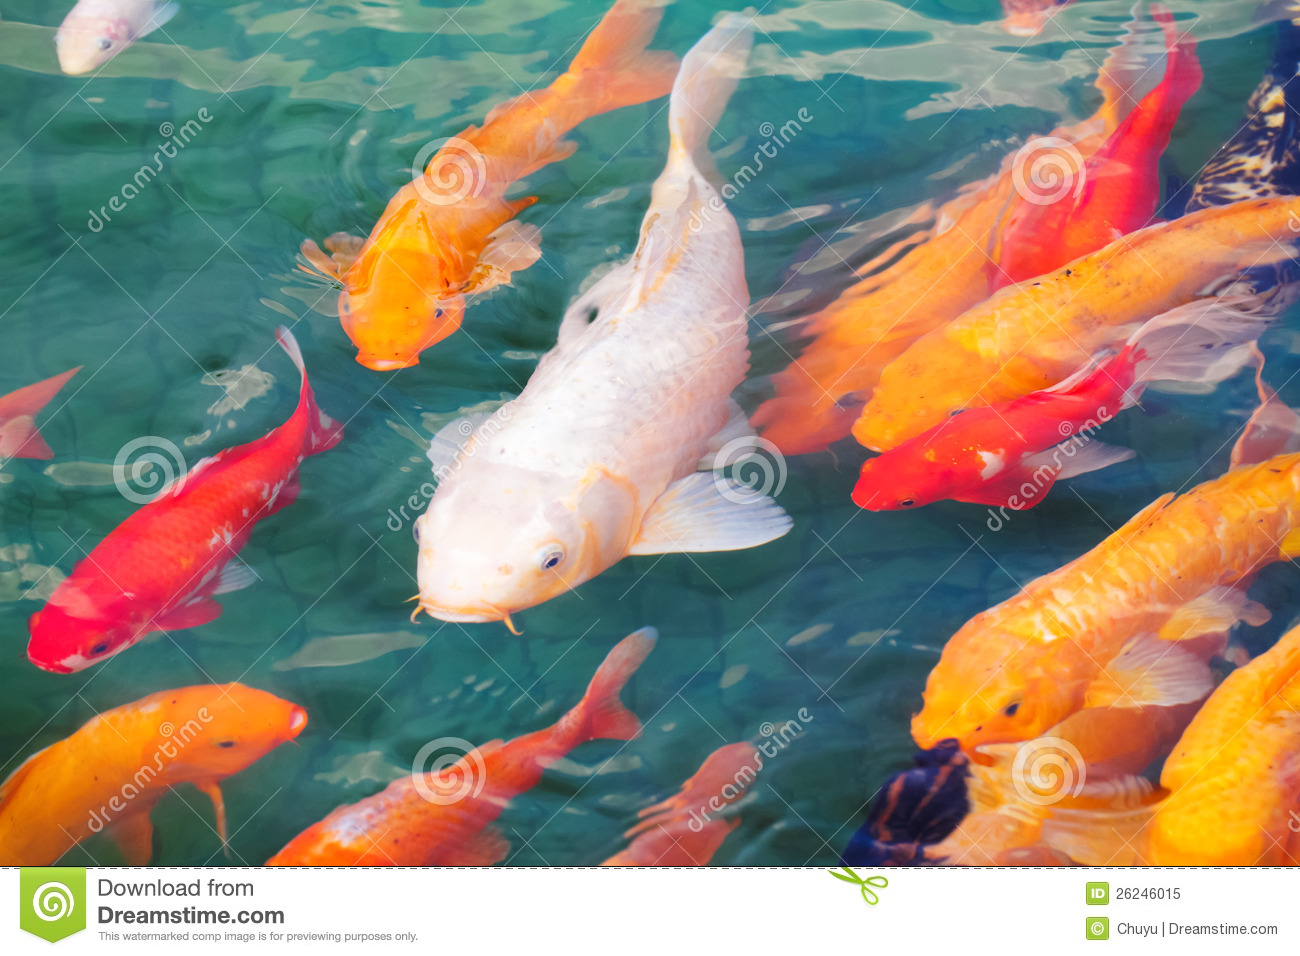 Beautiful koi fish stock image image of aquatic carp Koi fish swimming pool